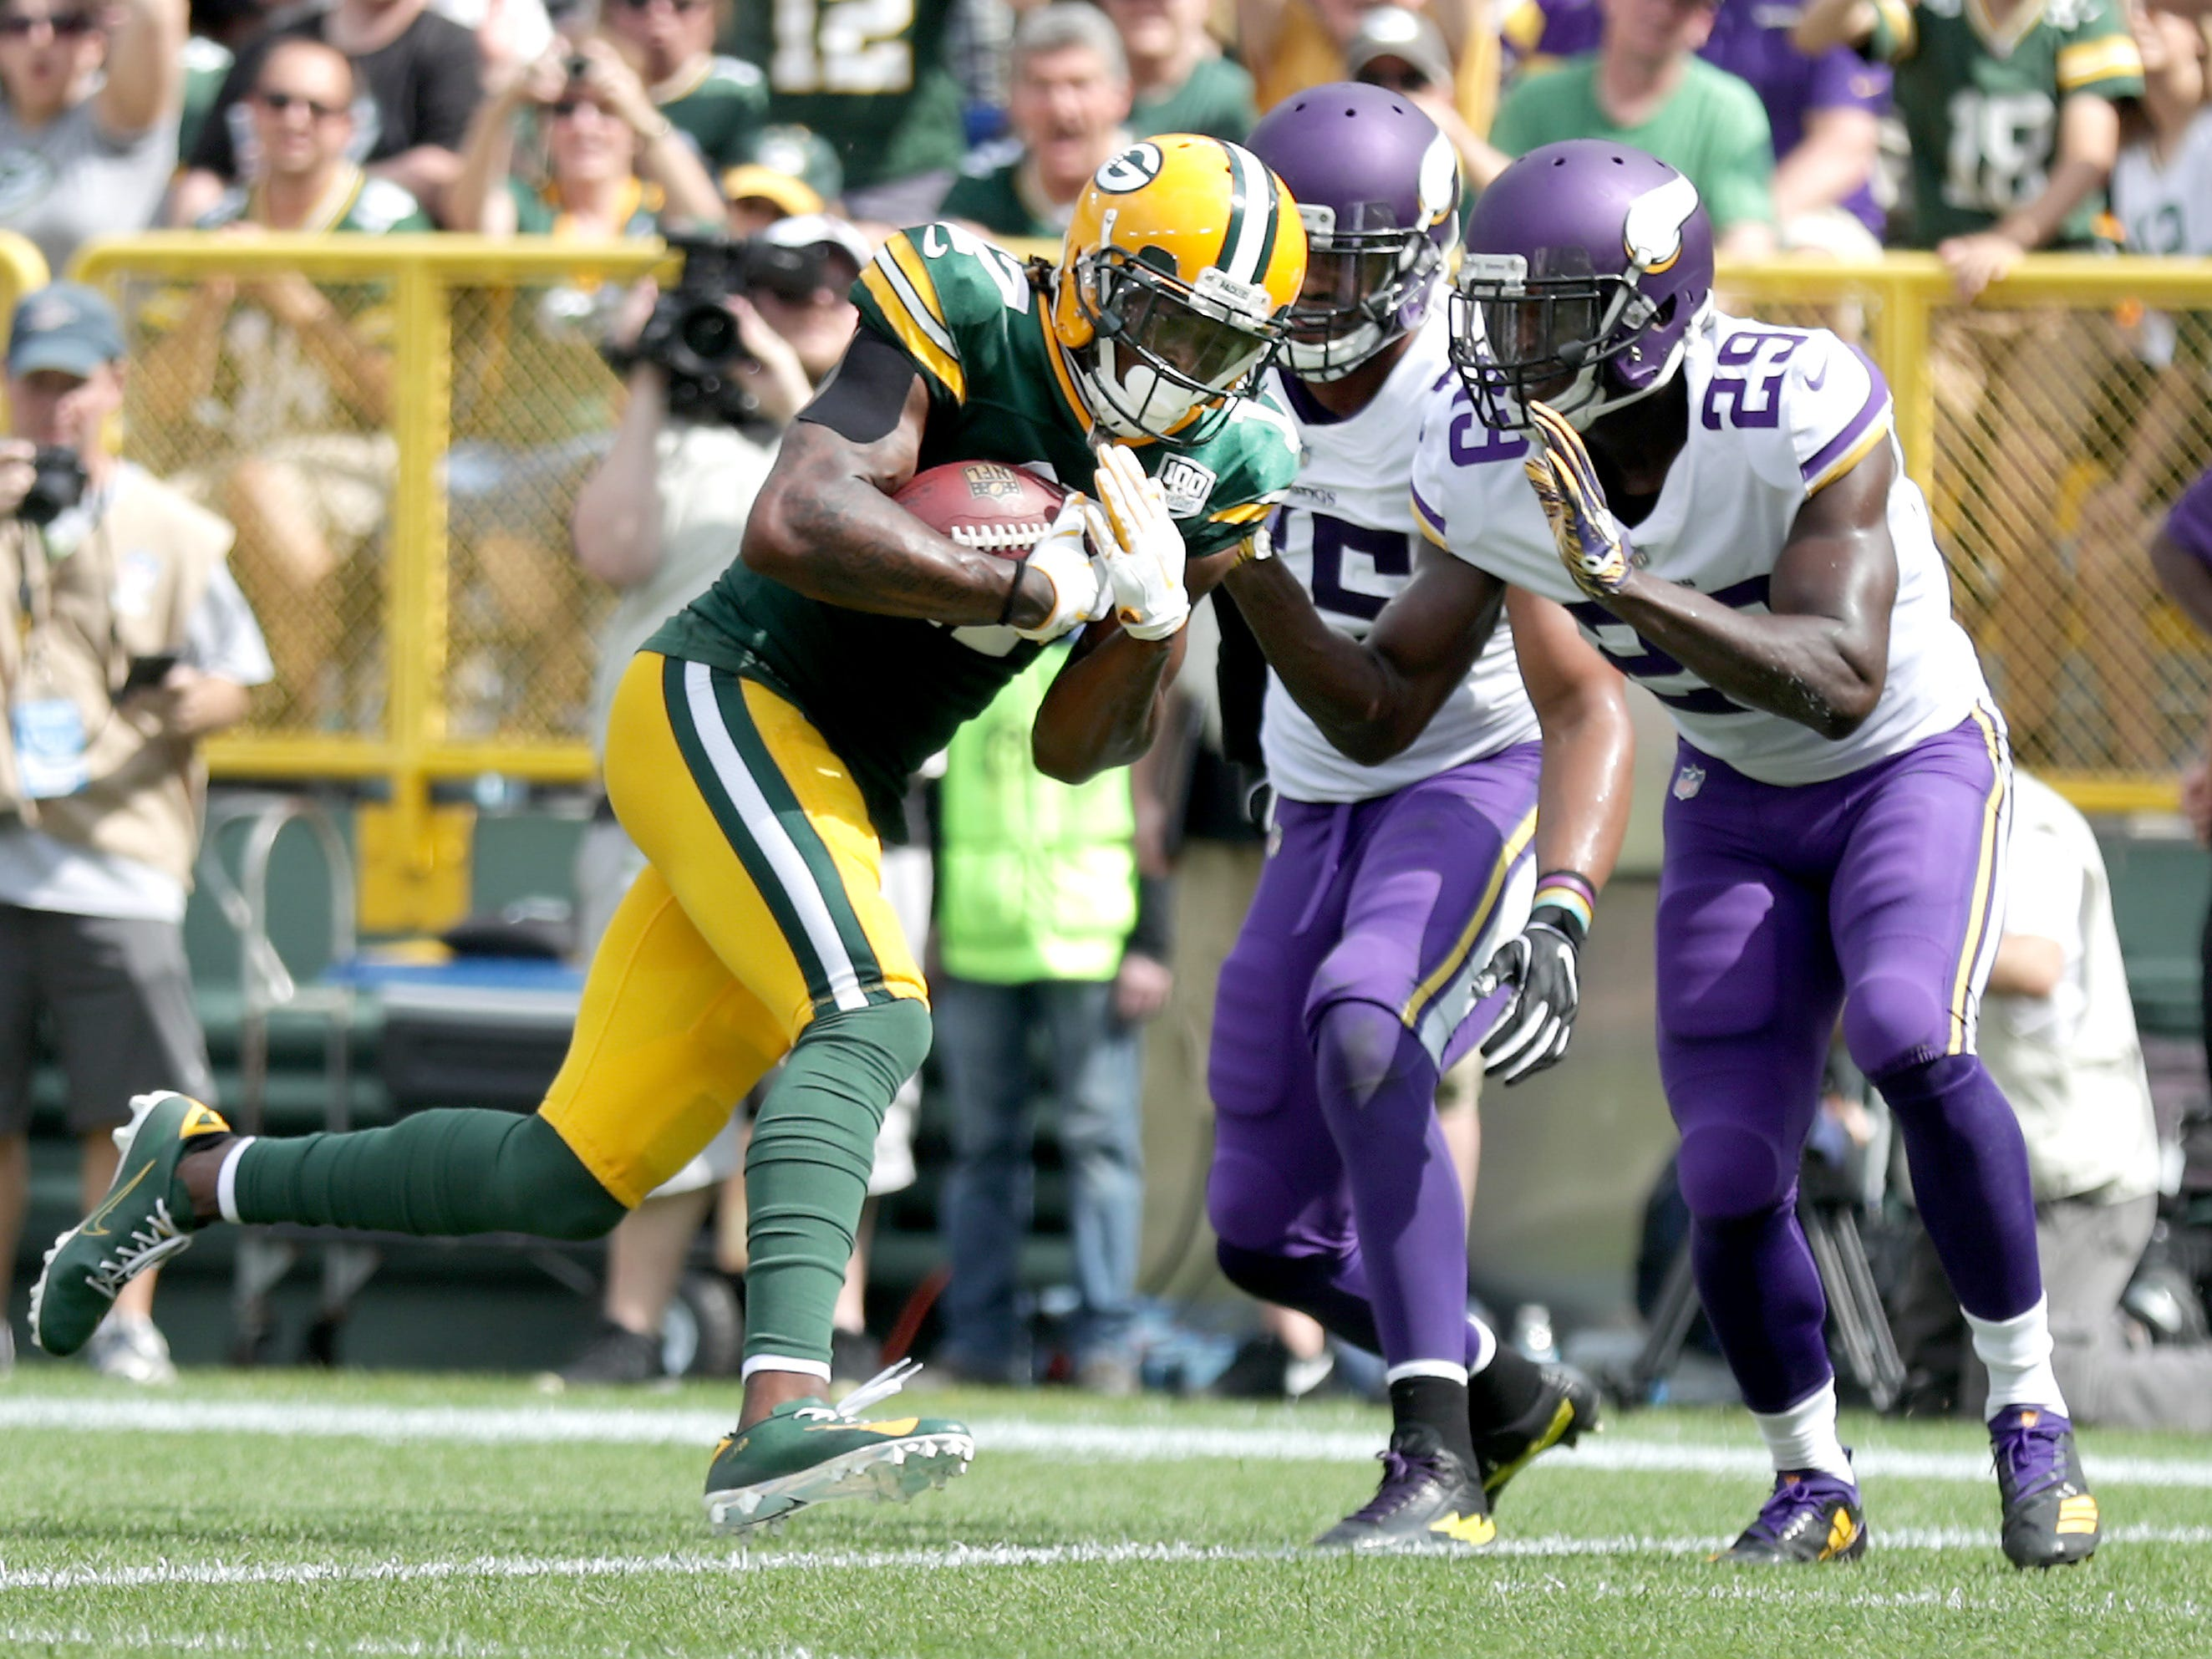 Green Bay Packers' Davante Adams crosses the goal line in the first half against the Minnesota Vikings during their football game on Sunday, September 16, 2018, at Lambeau Field in Green Bay, Wis.